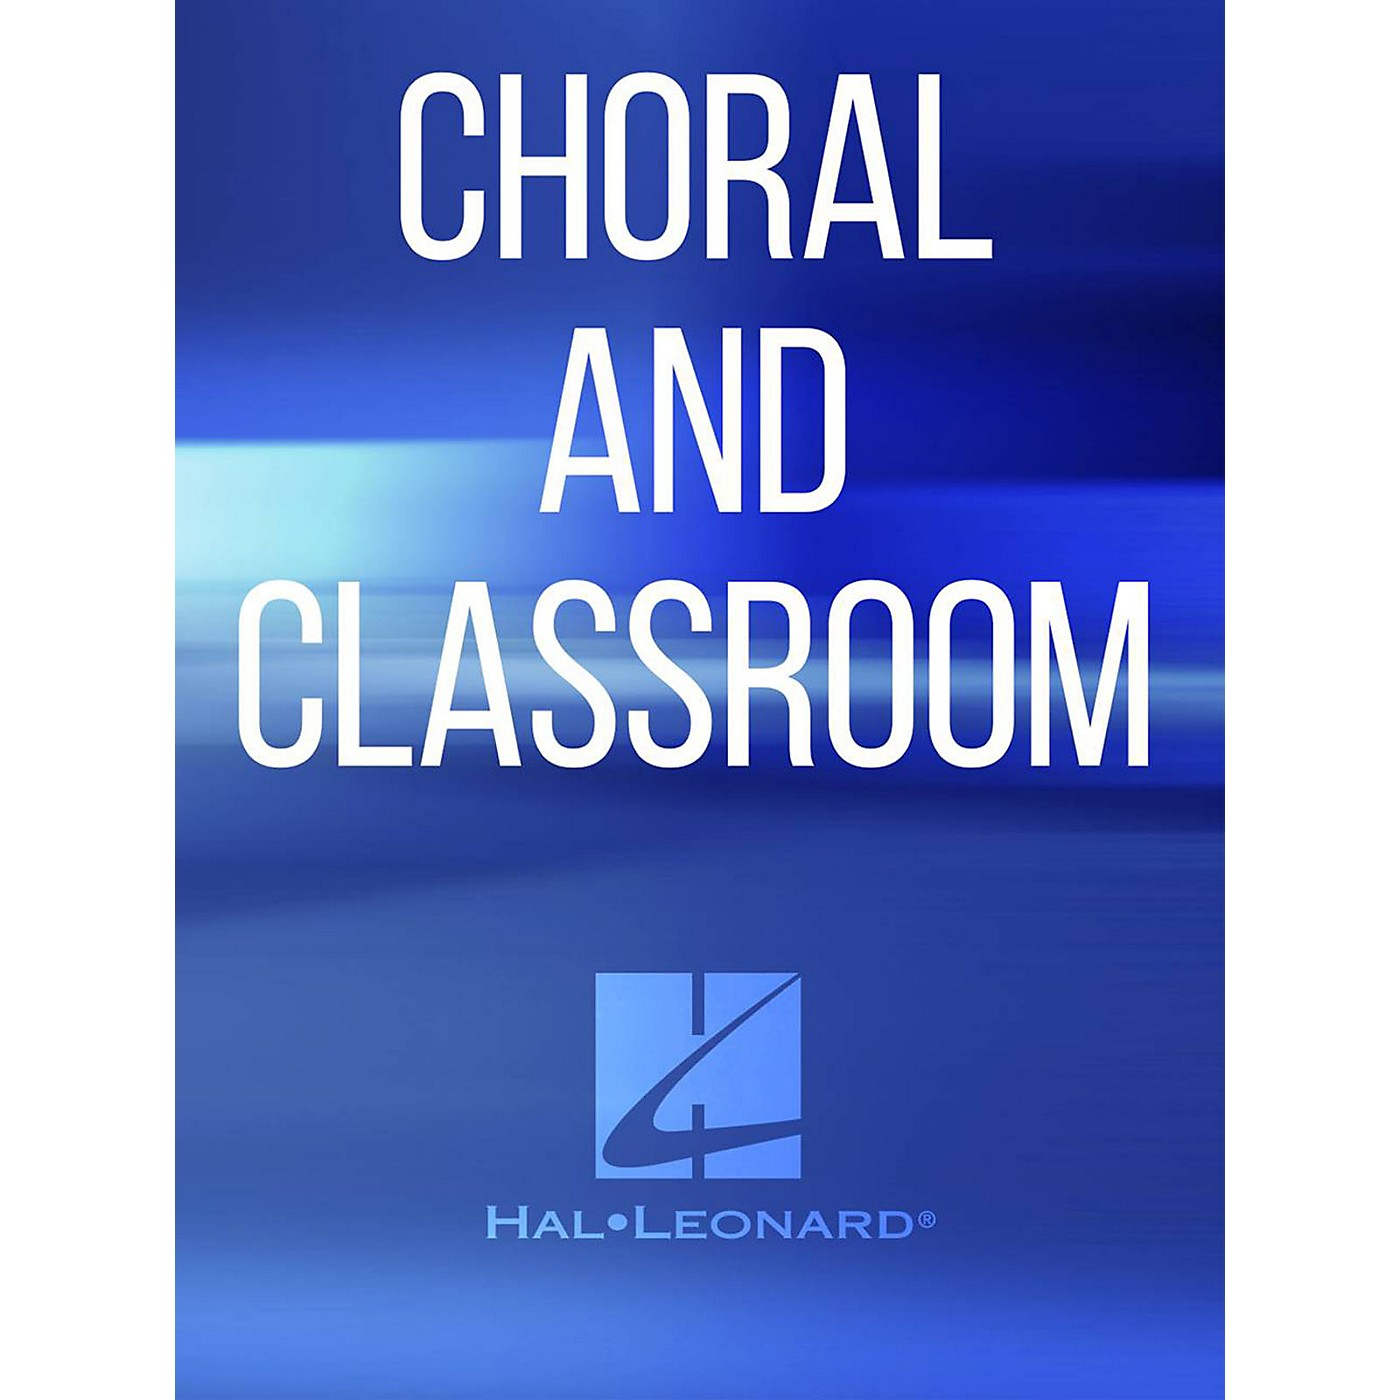 Hal Leonard Everything ShowTrax CD by Michael Bublé Arranged by Roger Emerson thumbnail